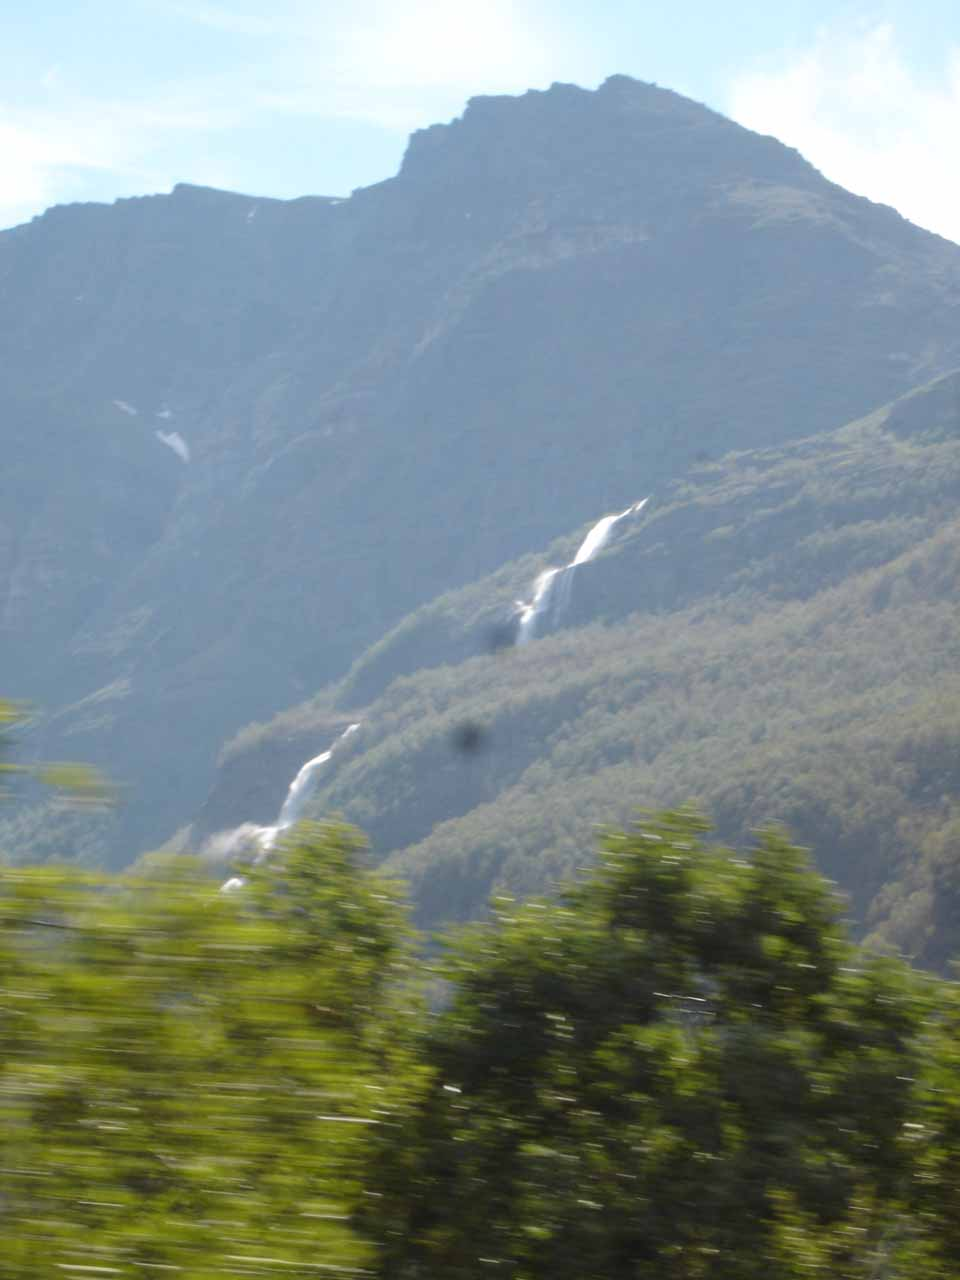 On the day before, we were driving north towards Kåfjorden and we caught a glimpse of this fairly sizable waterfall but we didn't know which stream it belonged to